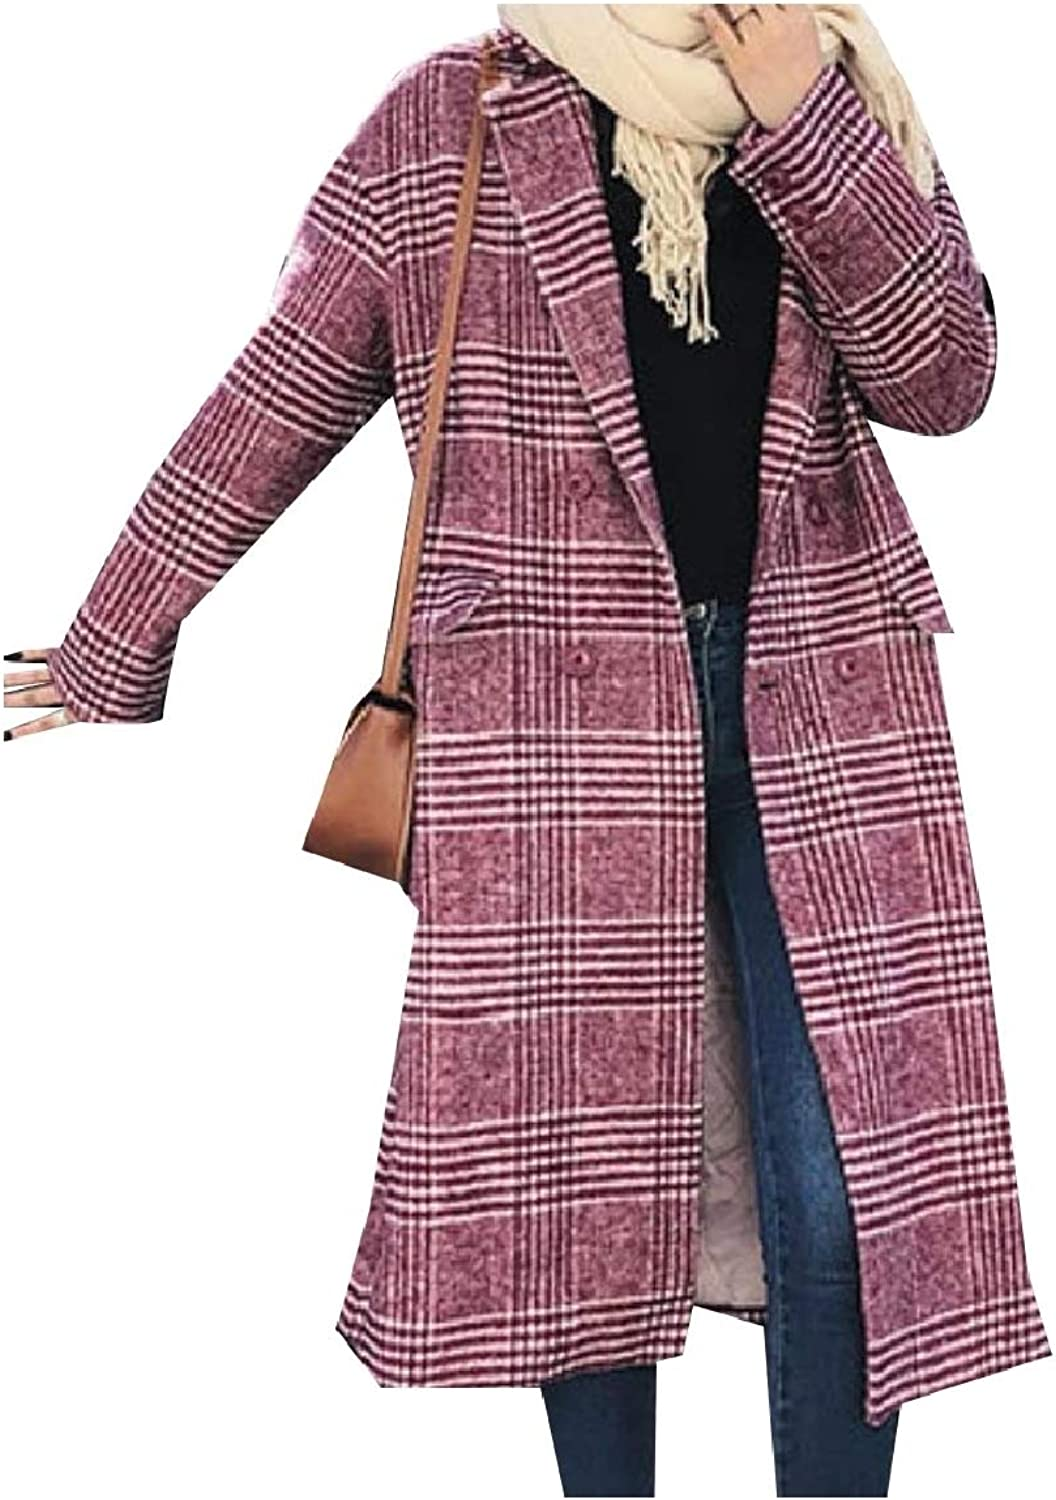 ROHEP Women Overcoat Trench Plaid Relaxed WoolBlend Fashion Parka Jacket